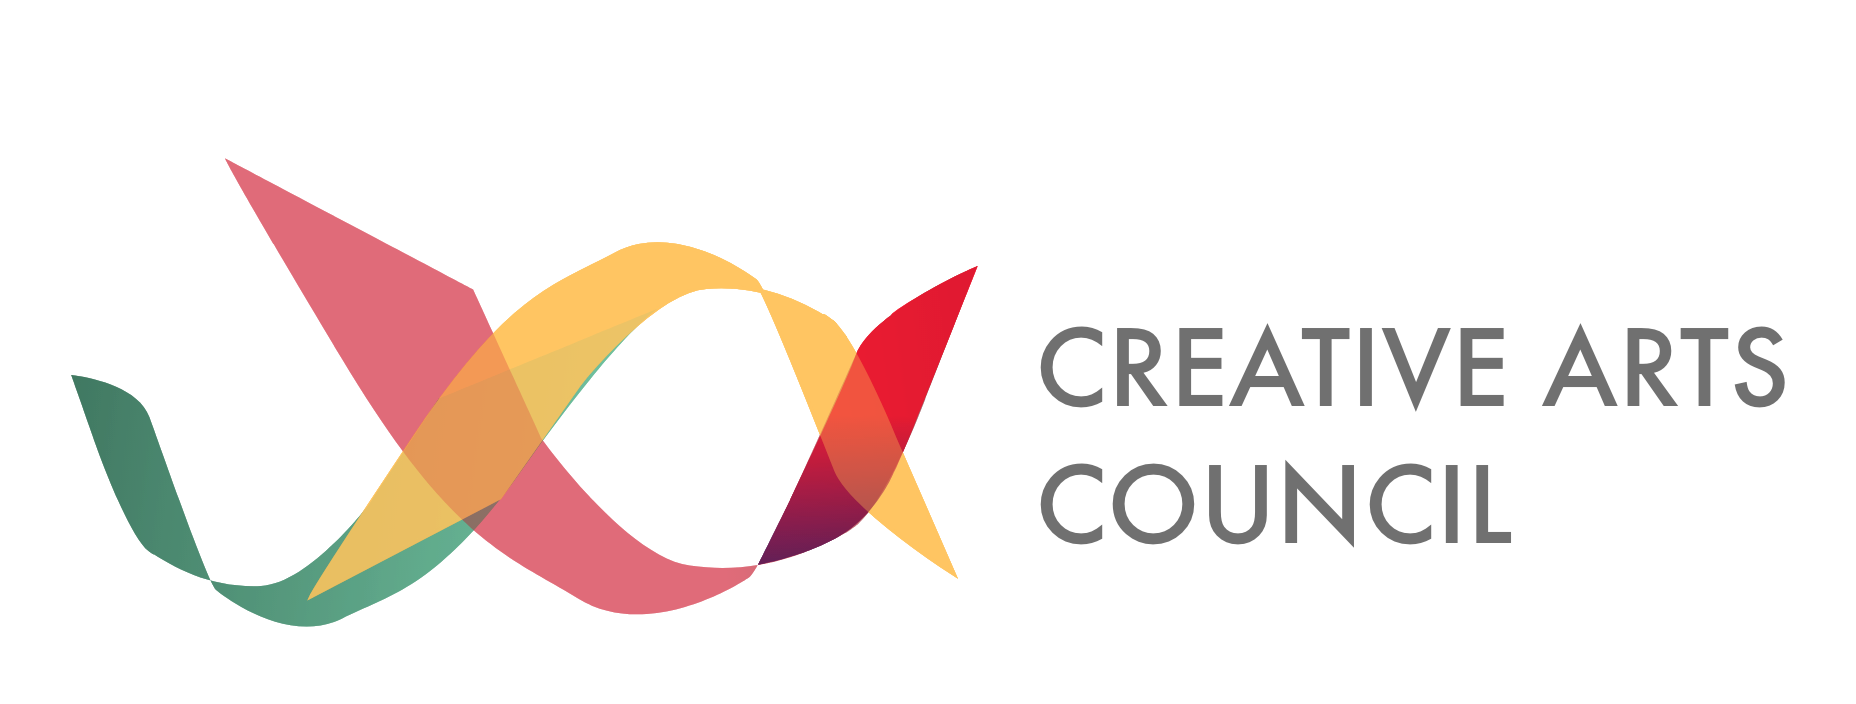 Creative Arts Council Logo